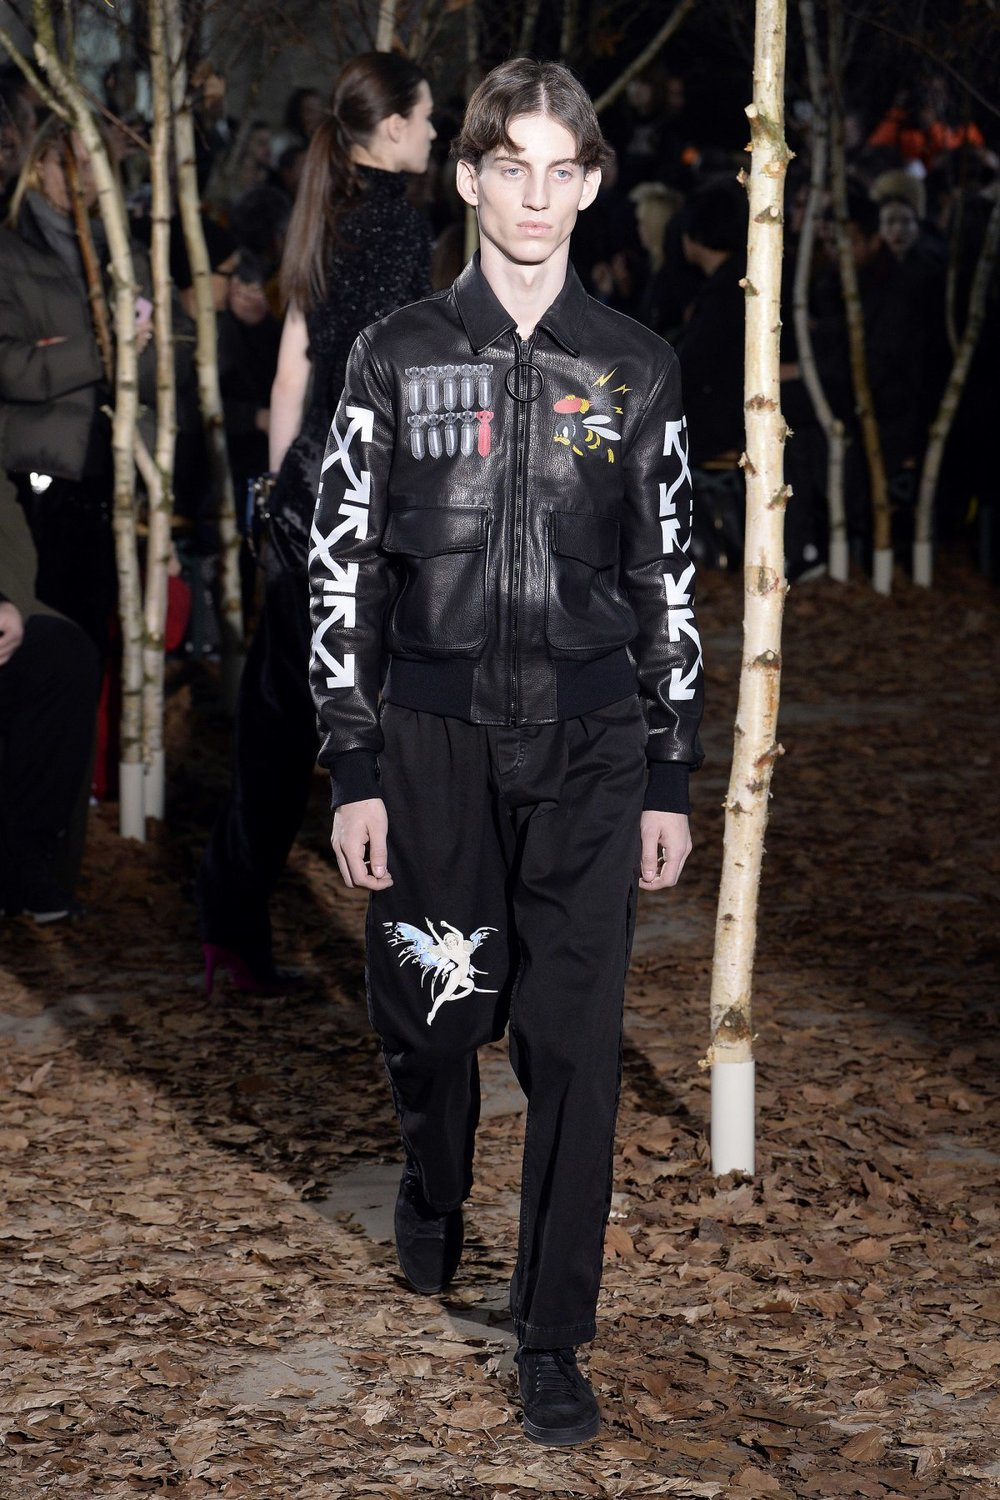 off_white_look_32_2017_aw_mens.jpeg